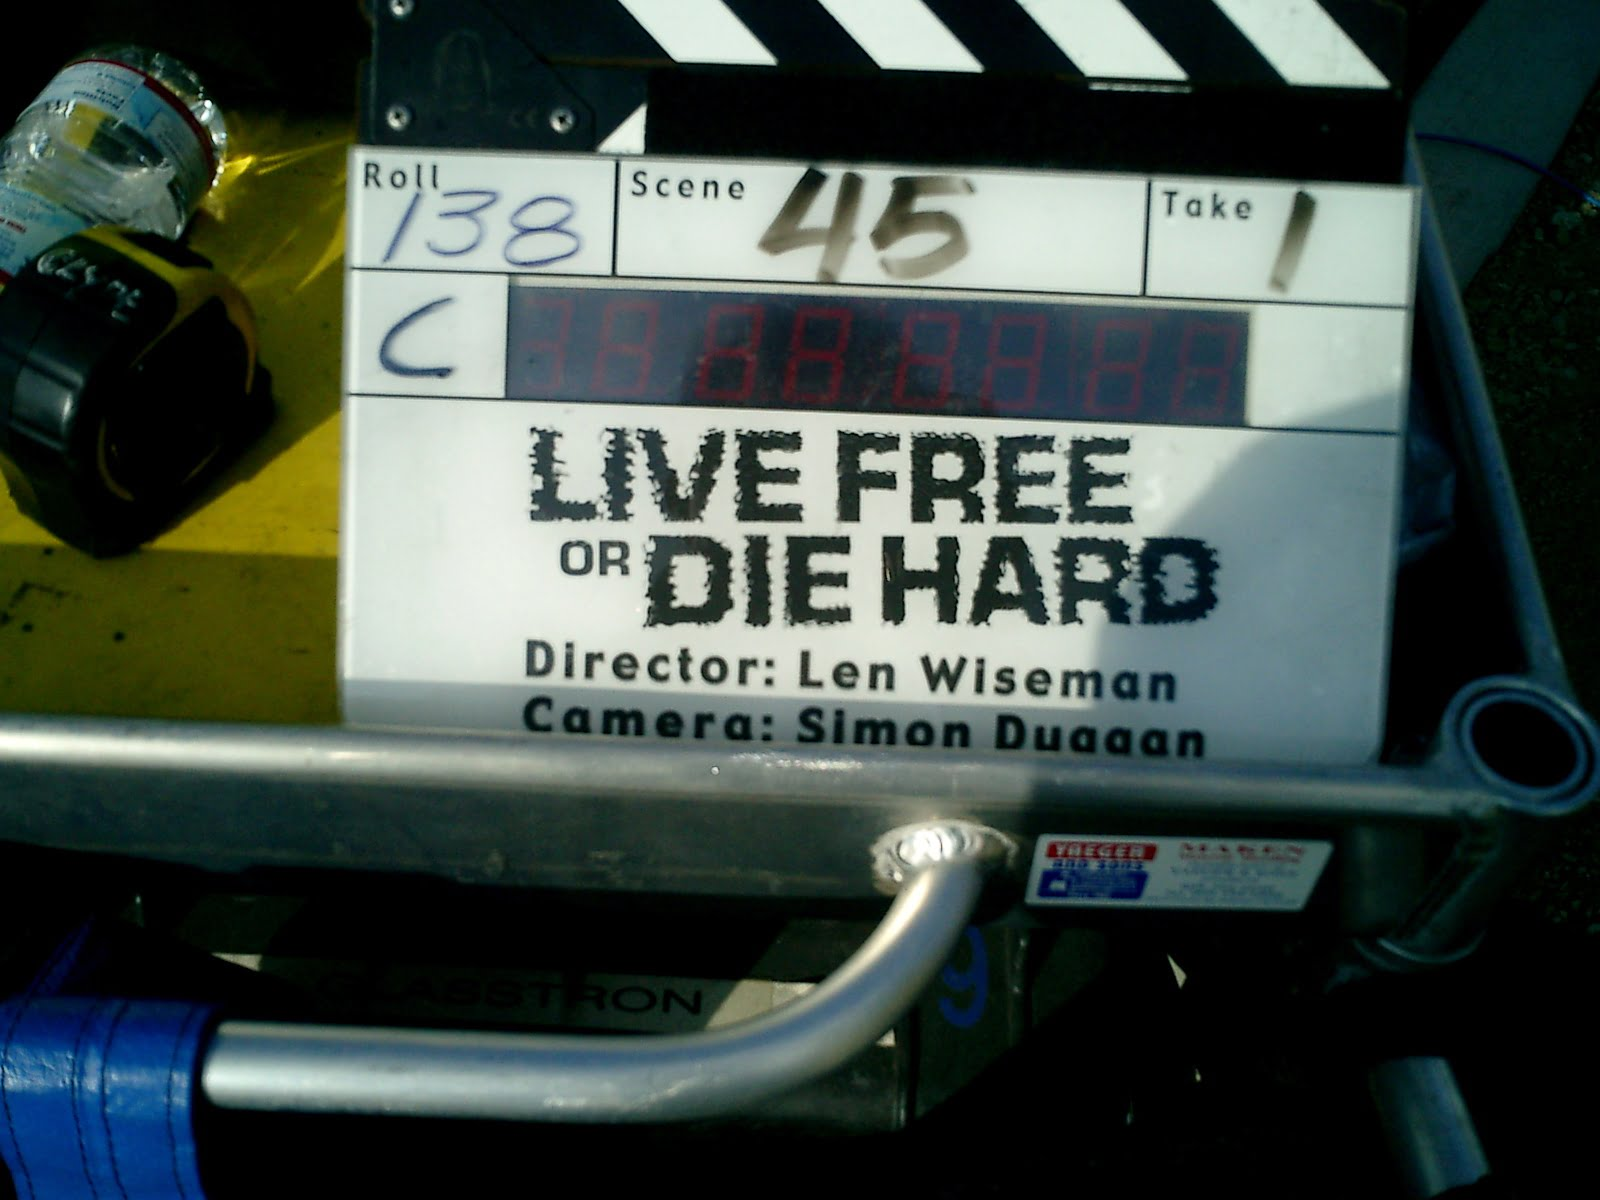 live-free-olickerr-die-hard-filming-locations